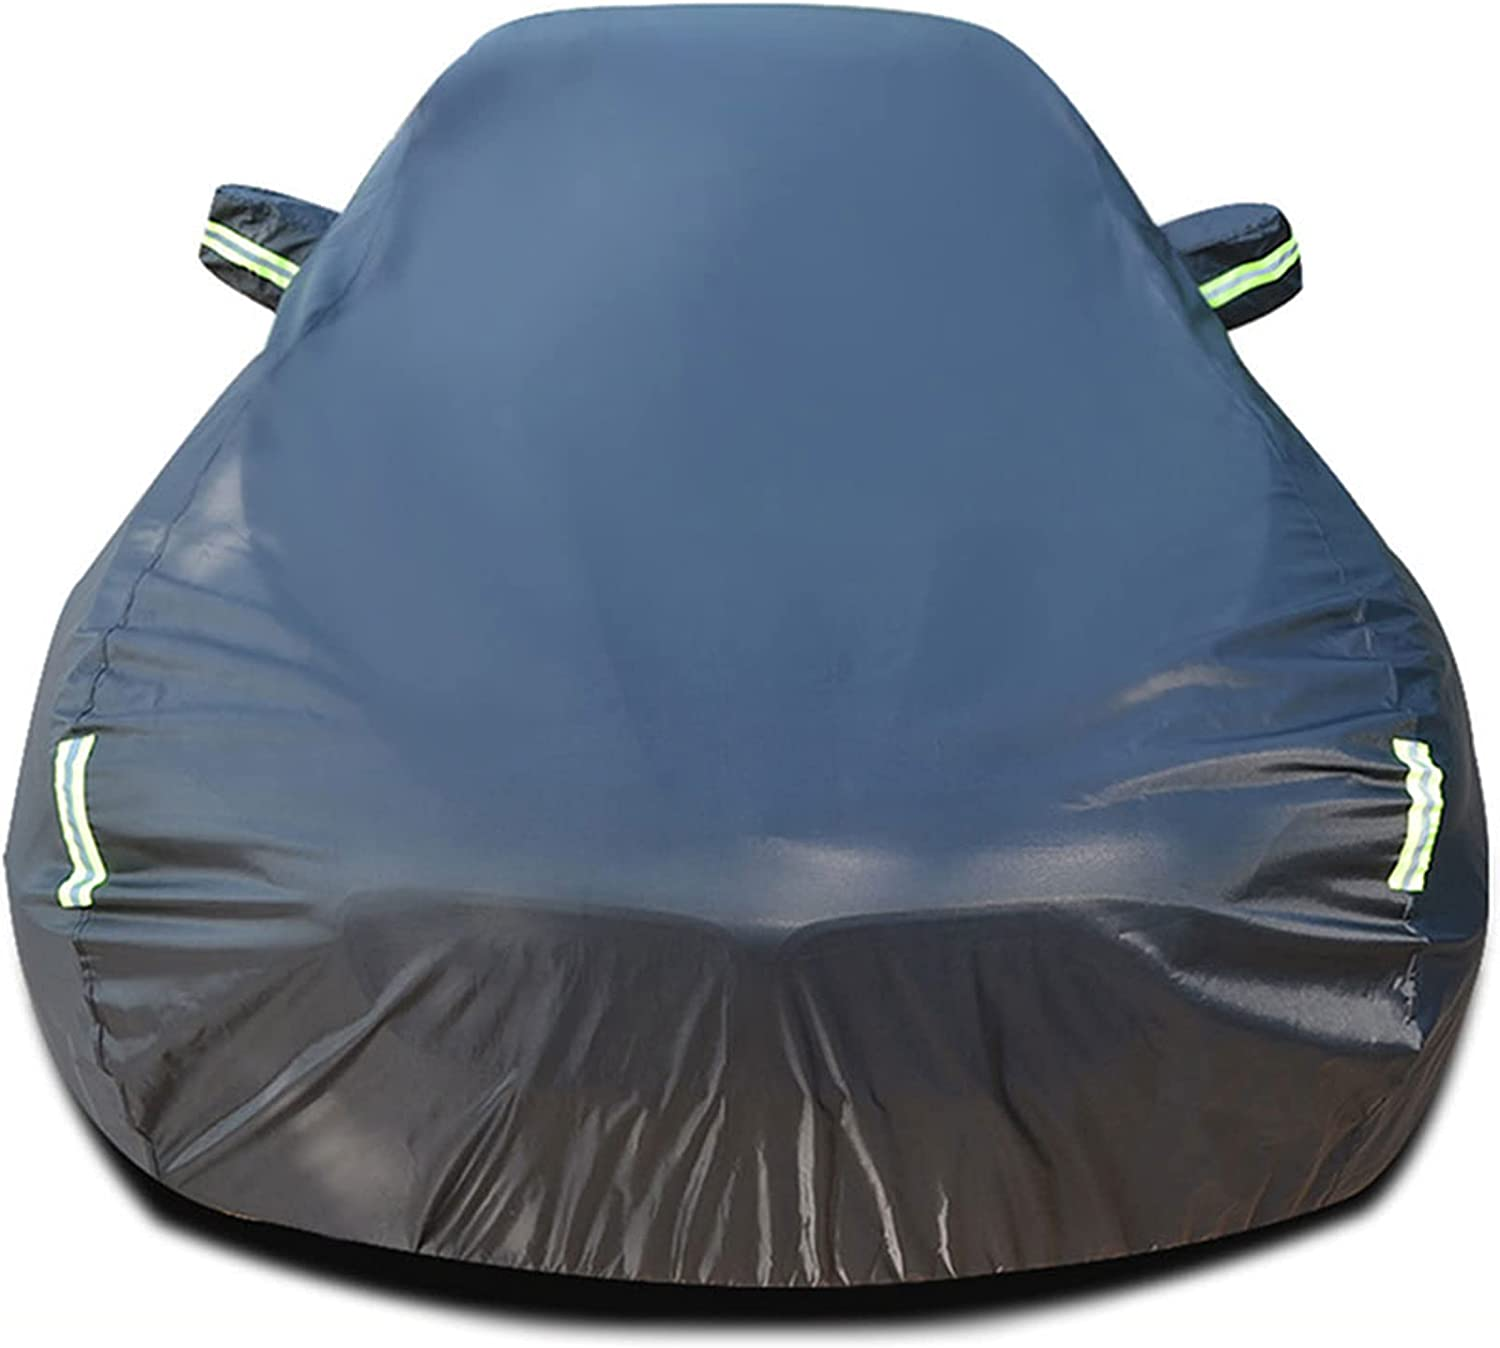 XXqccz Car Cover Compatible with Waterpr Clearance Ranking TOP14 SALE Limited time Mini Cooper Breathable